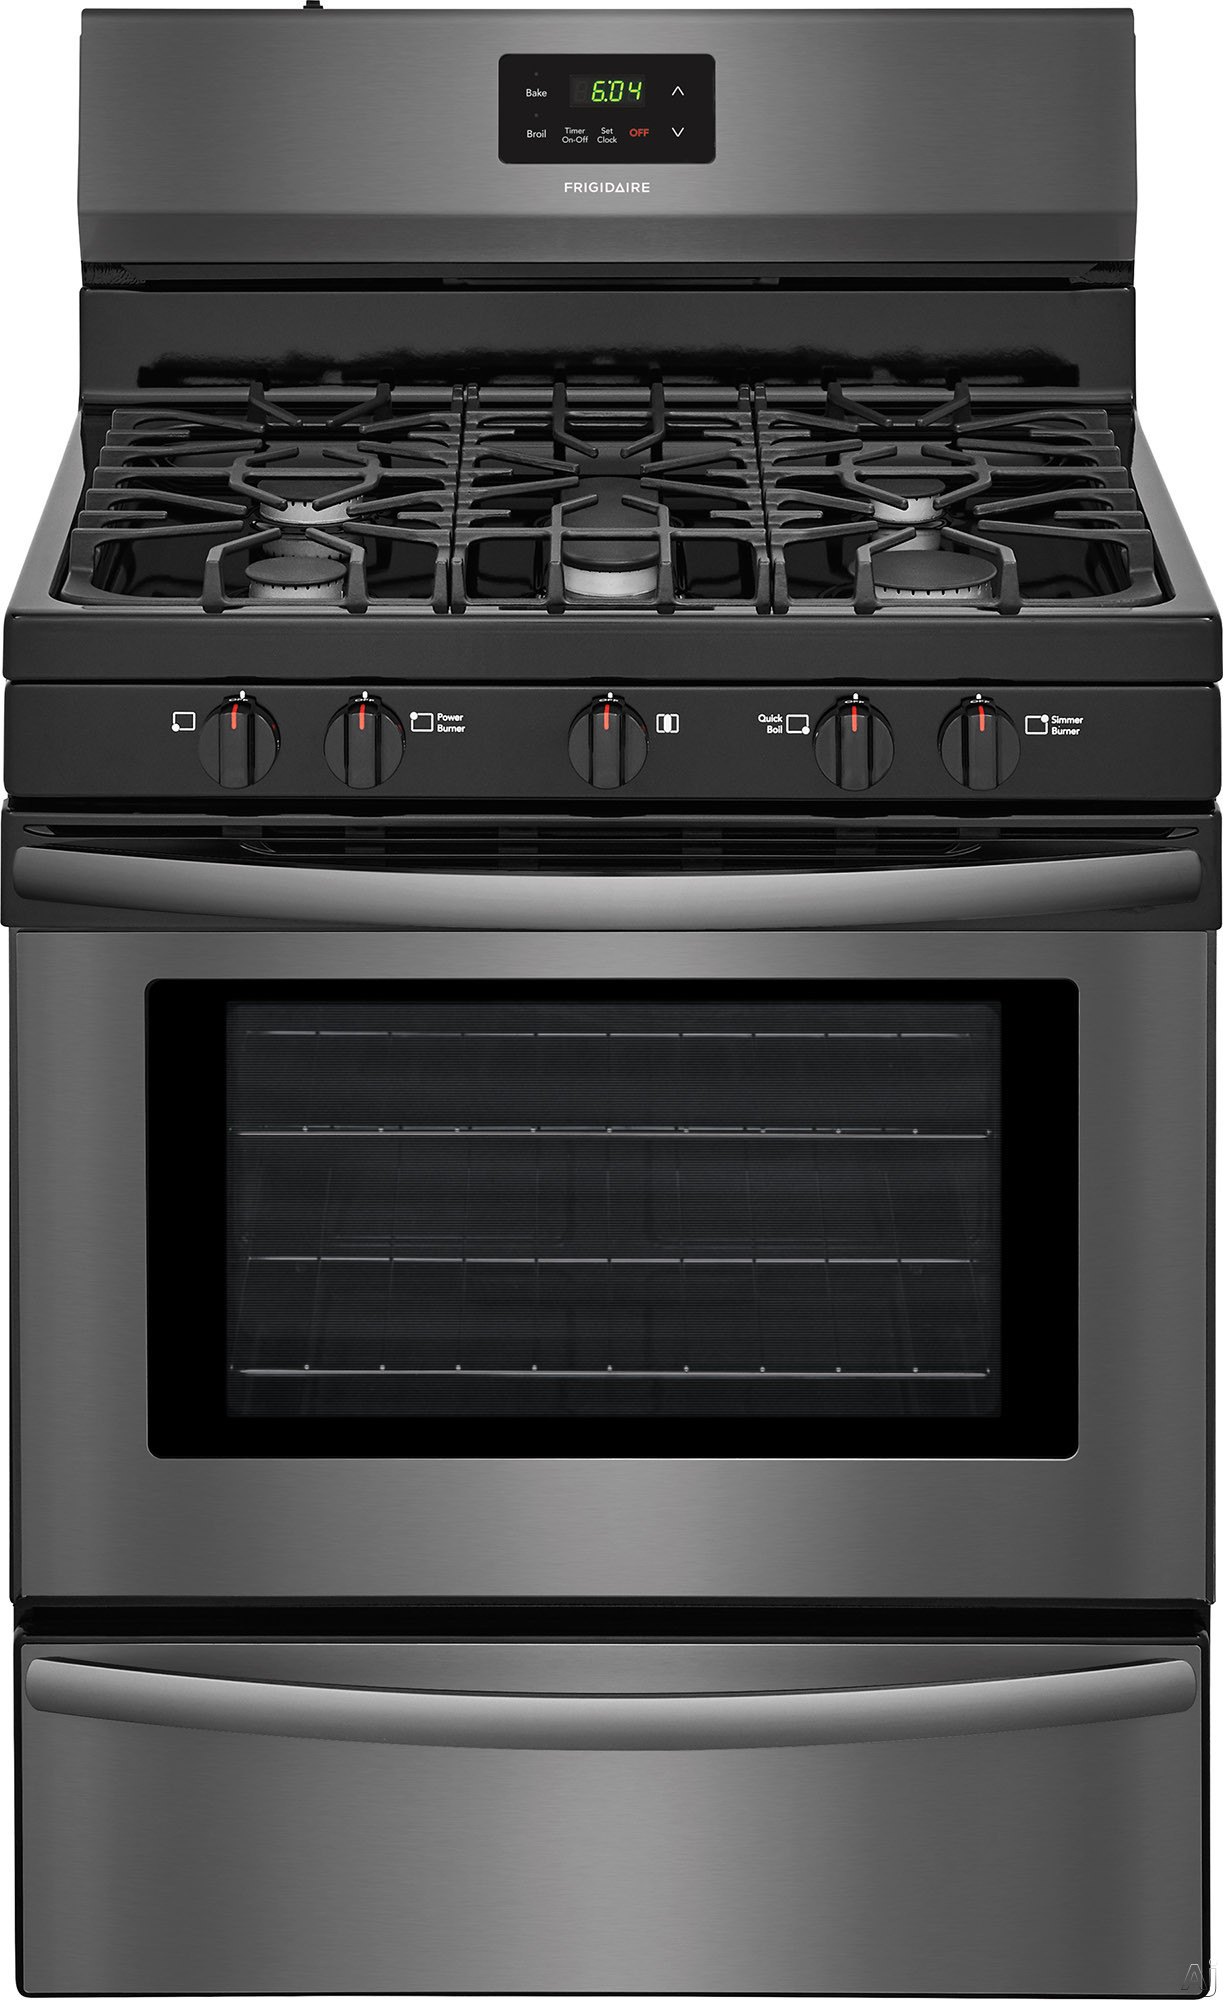 Frigidaire FFGF3052TD 30 Inch Freestanding Gas Range with Simmer Burner, Broiler Drawer, Quick Broil Burner, Contentious Grates, 5 Sealed Burners and 4.2 cu. ft. Capacity: Black Stainless Steel